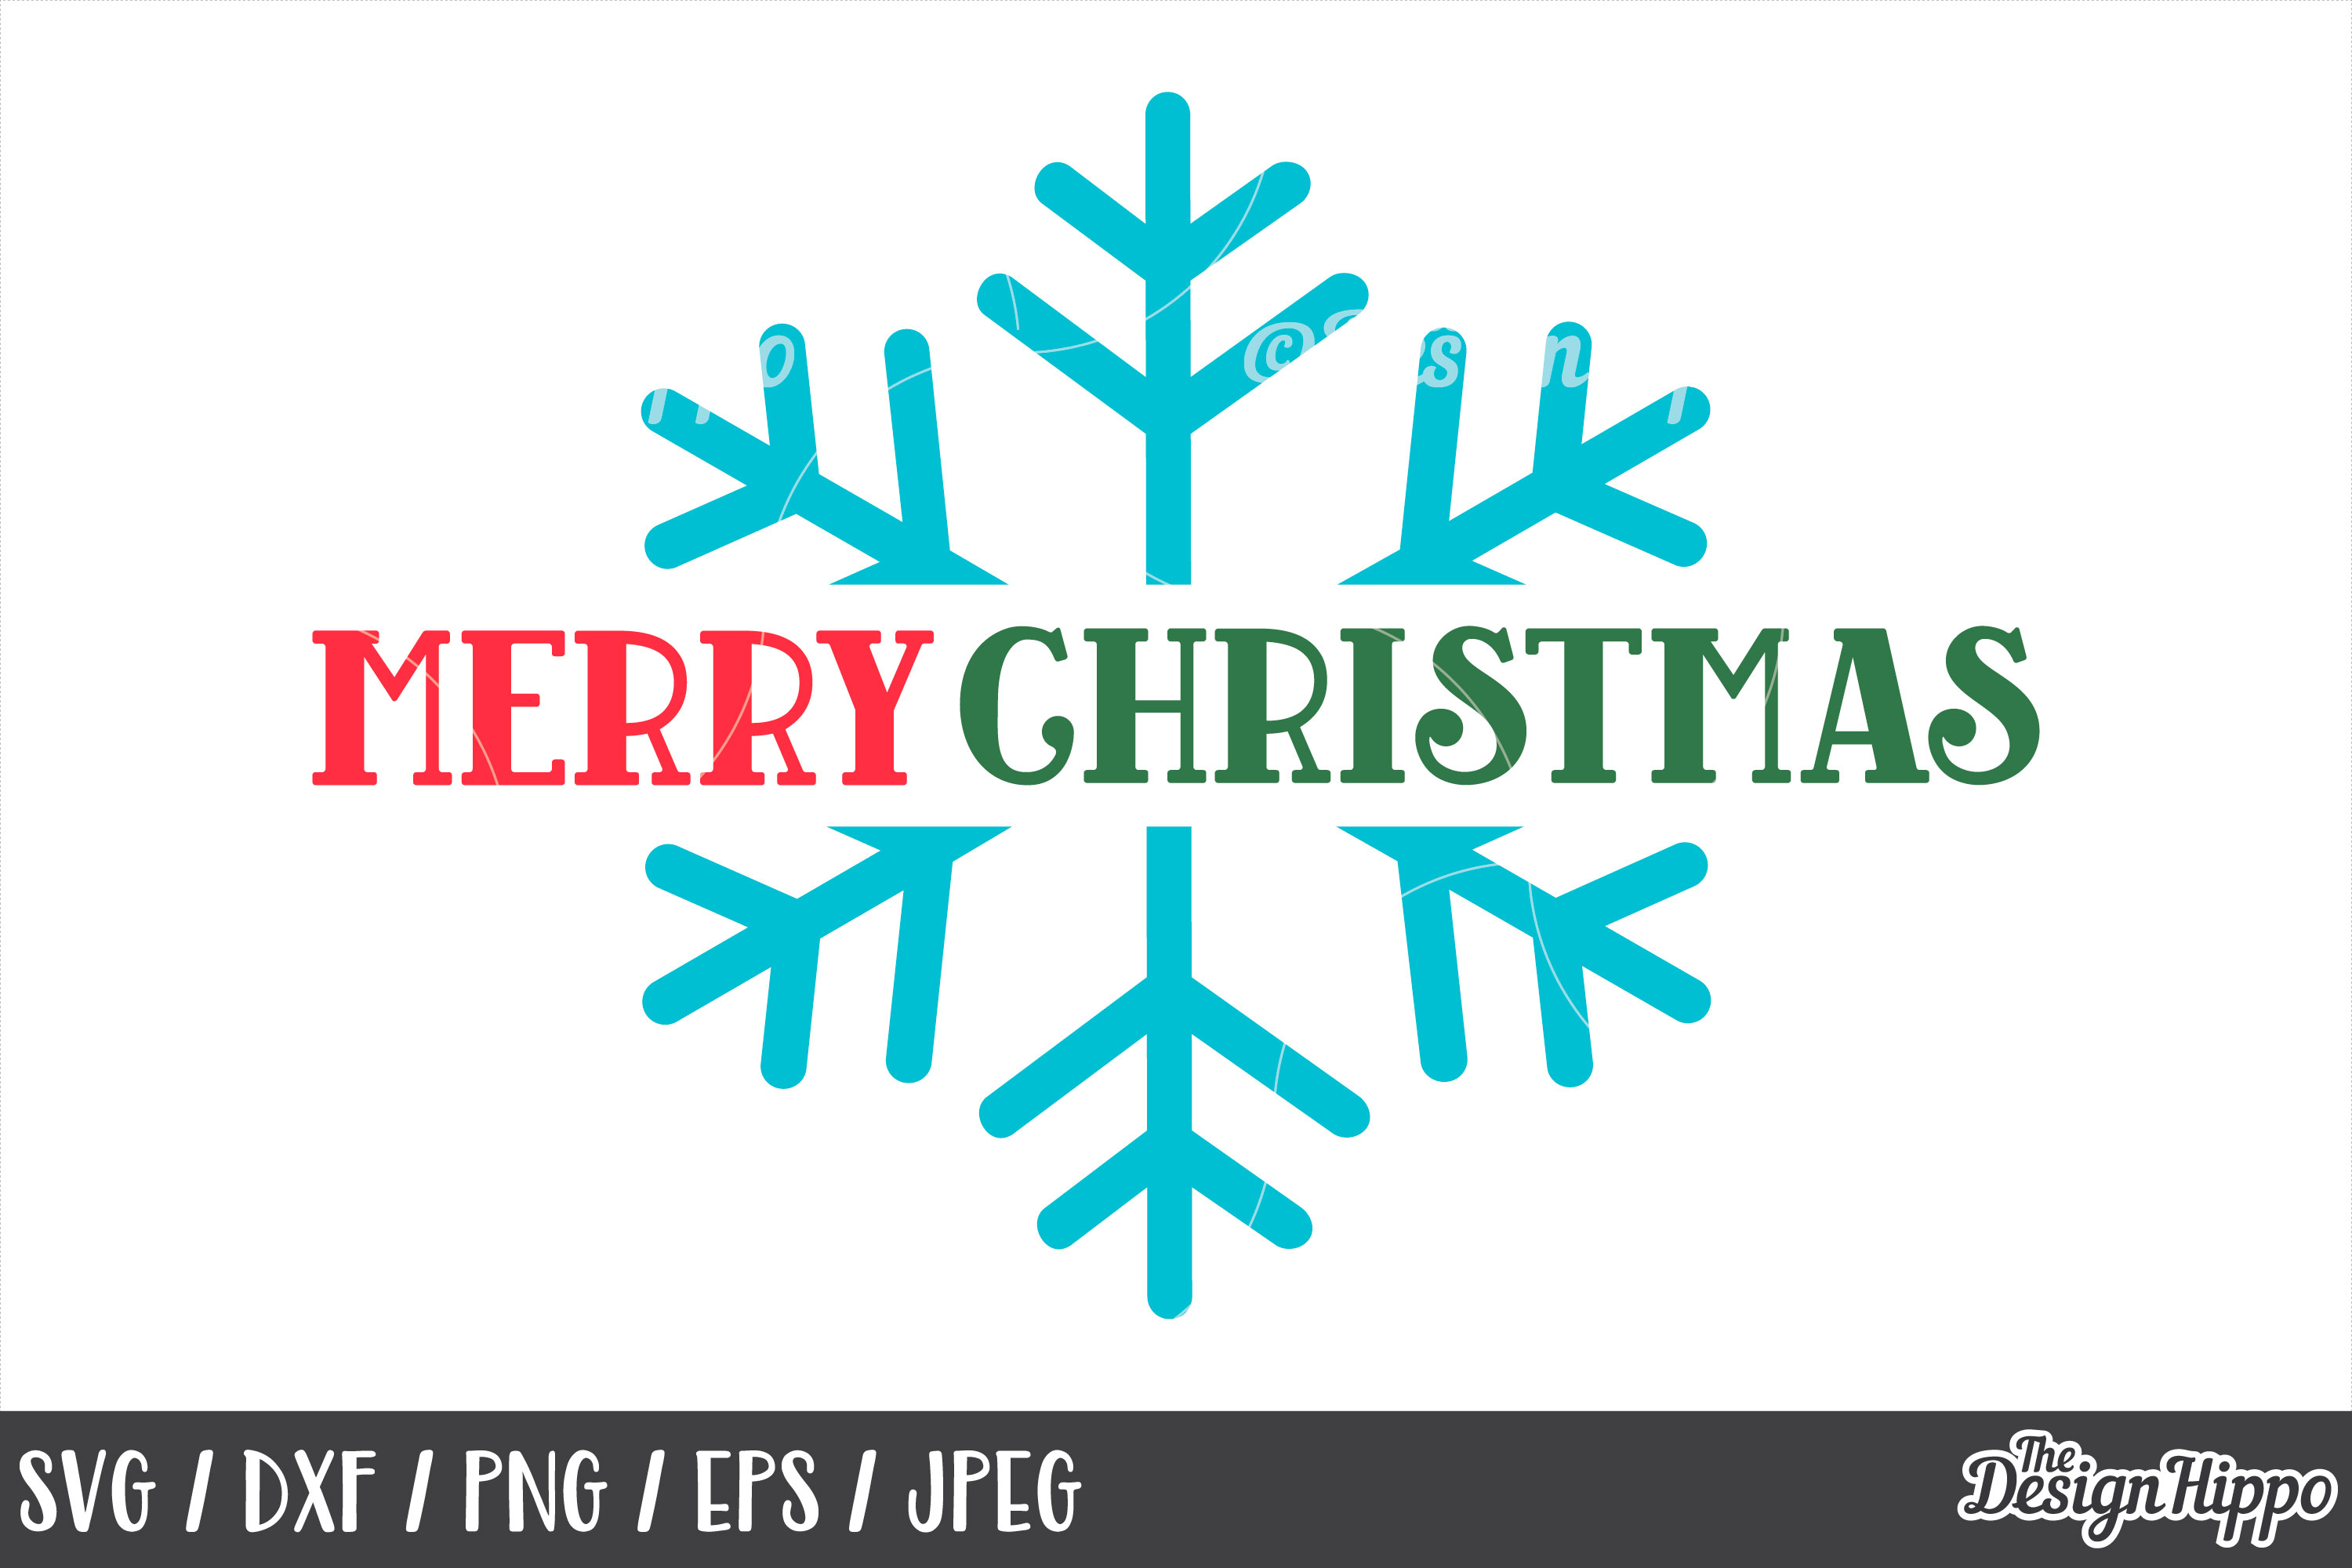 Snowflake, Merry Christmas SVG, DXF, PNG, Cricut, Cut Files example image 1